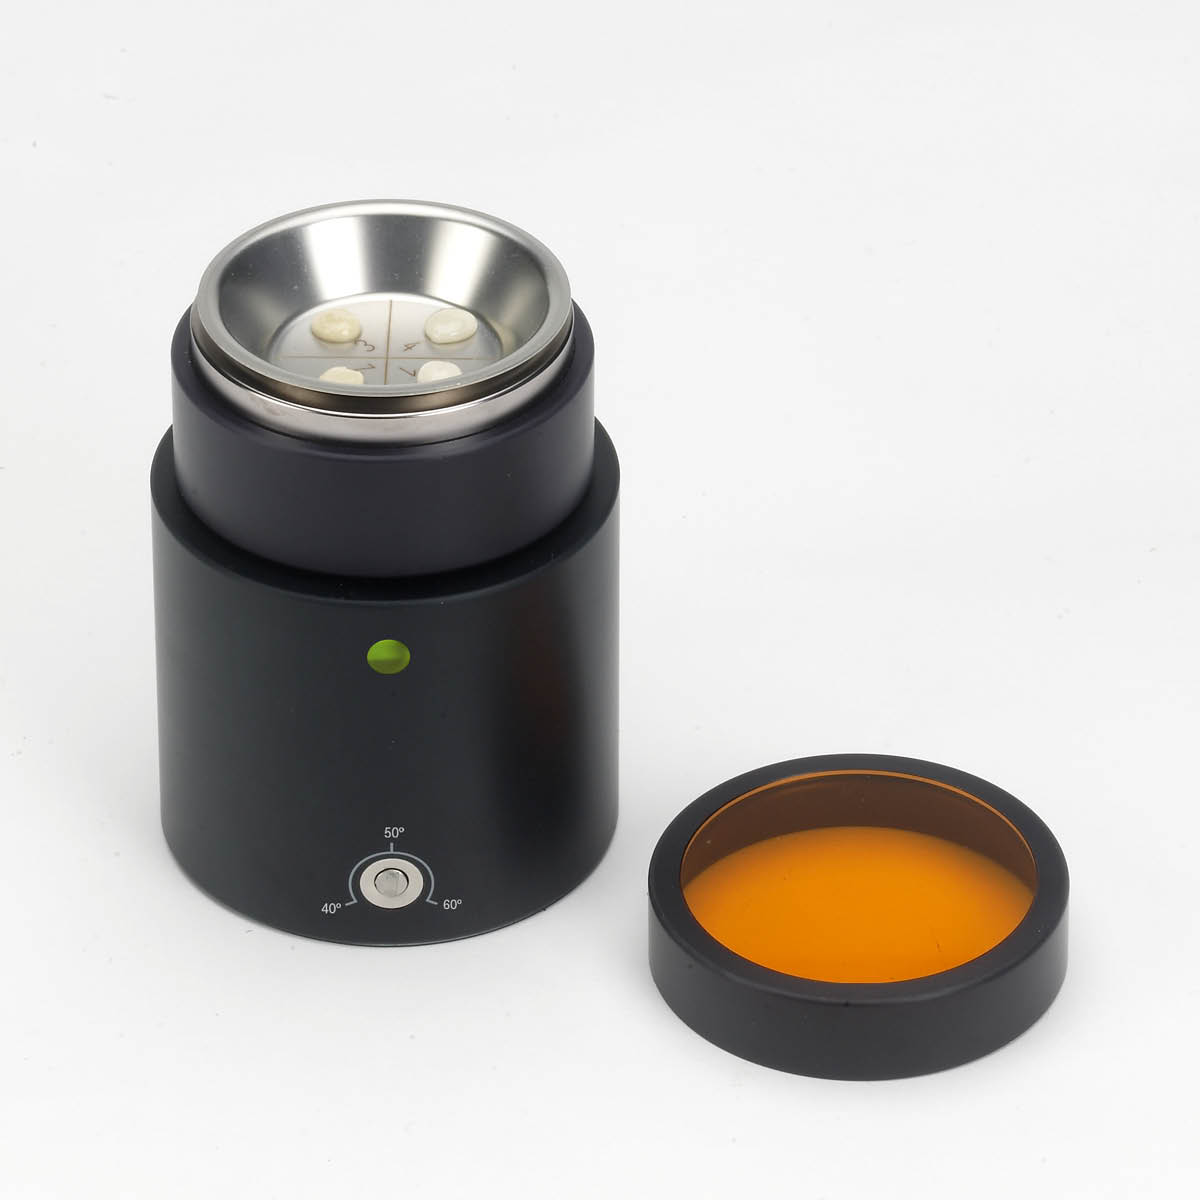 EASE-IT 1200 x 1200 1 jar and heater